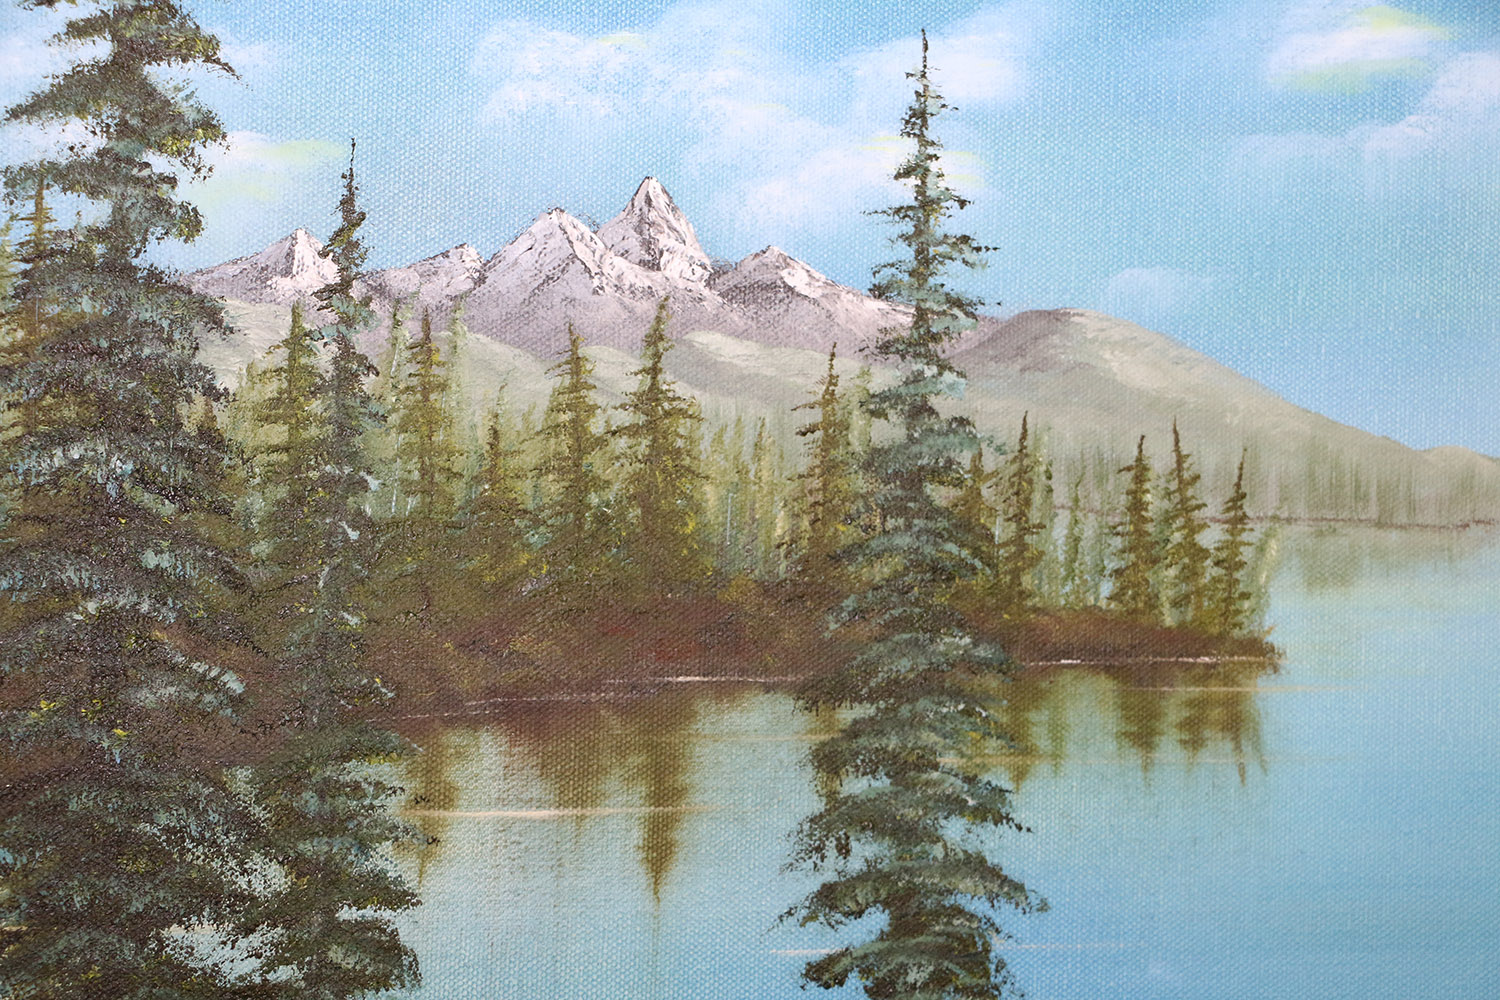 Painting of a Mountain scene with trees